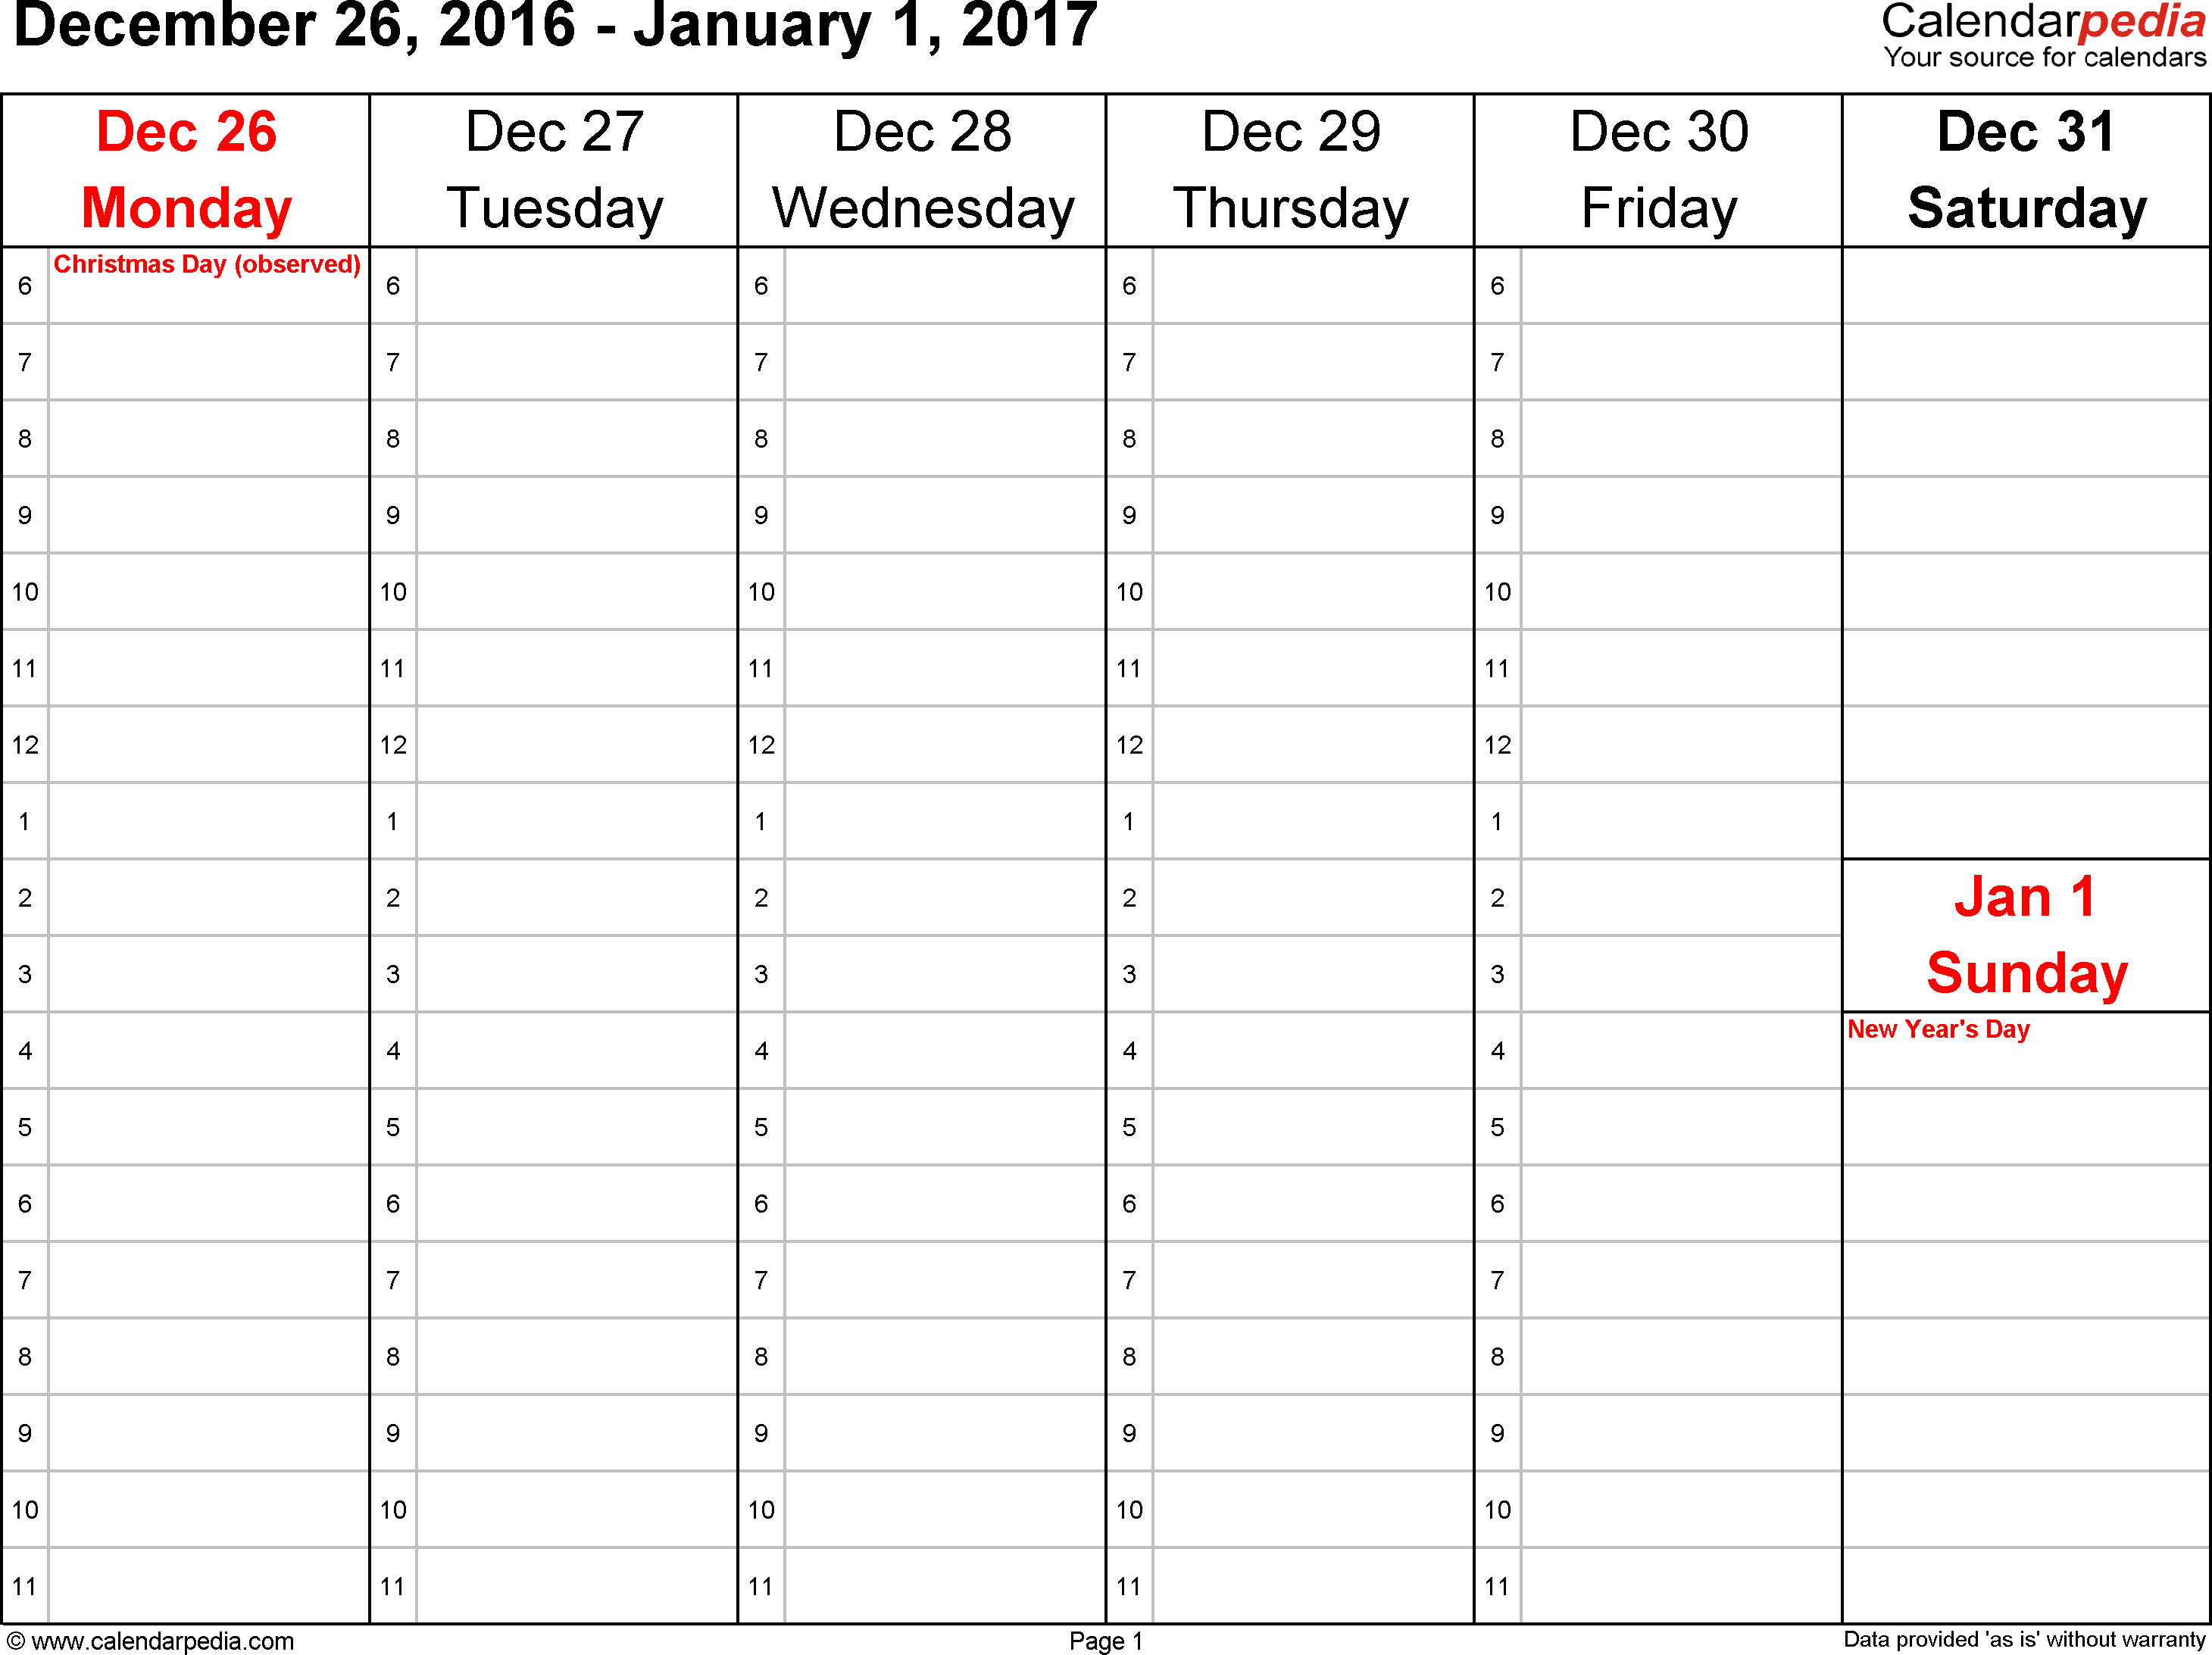 Weekly calendar 2017: template for PDF version 4, landscape, 53 pages, Saturday & Sunday share one column